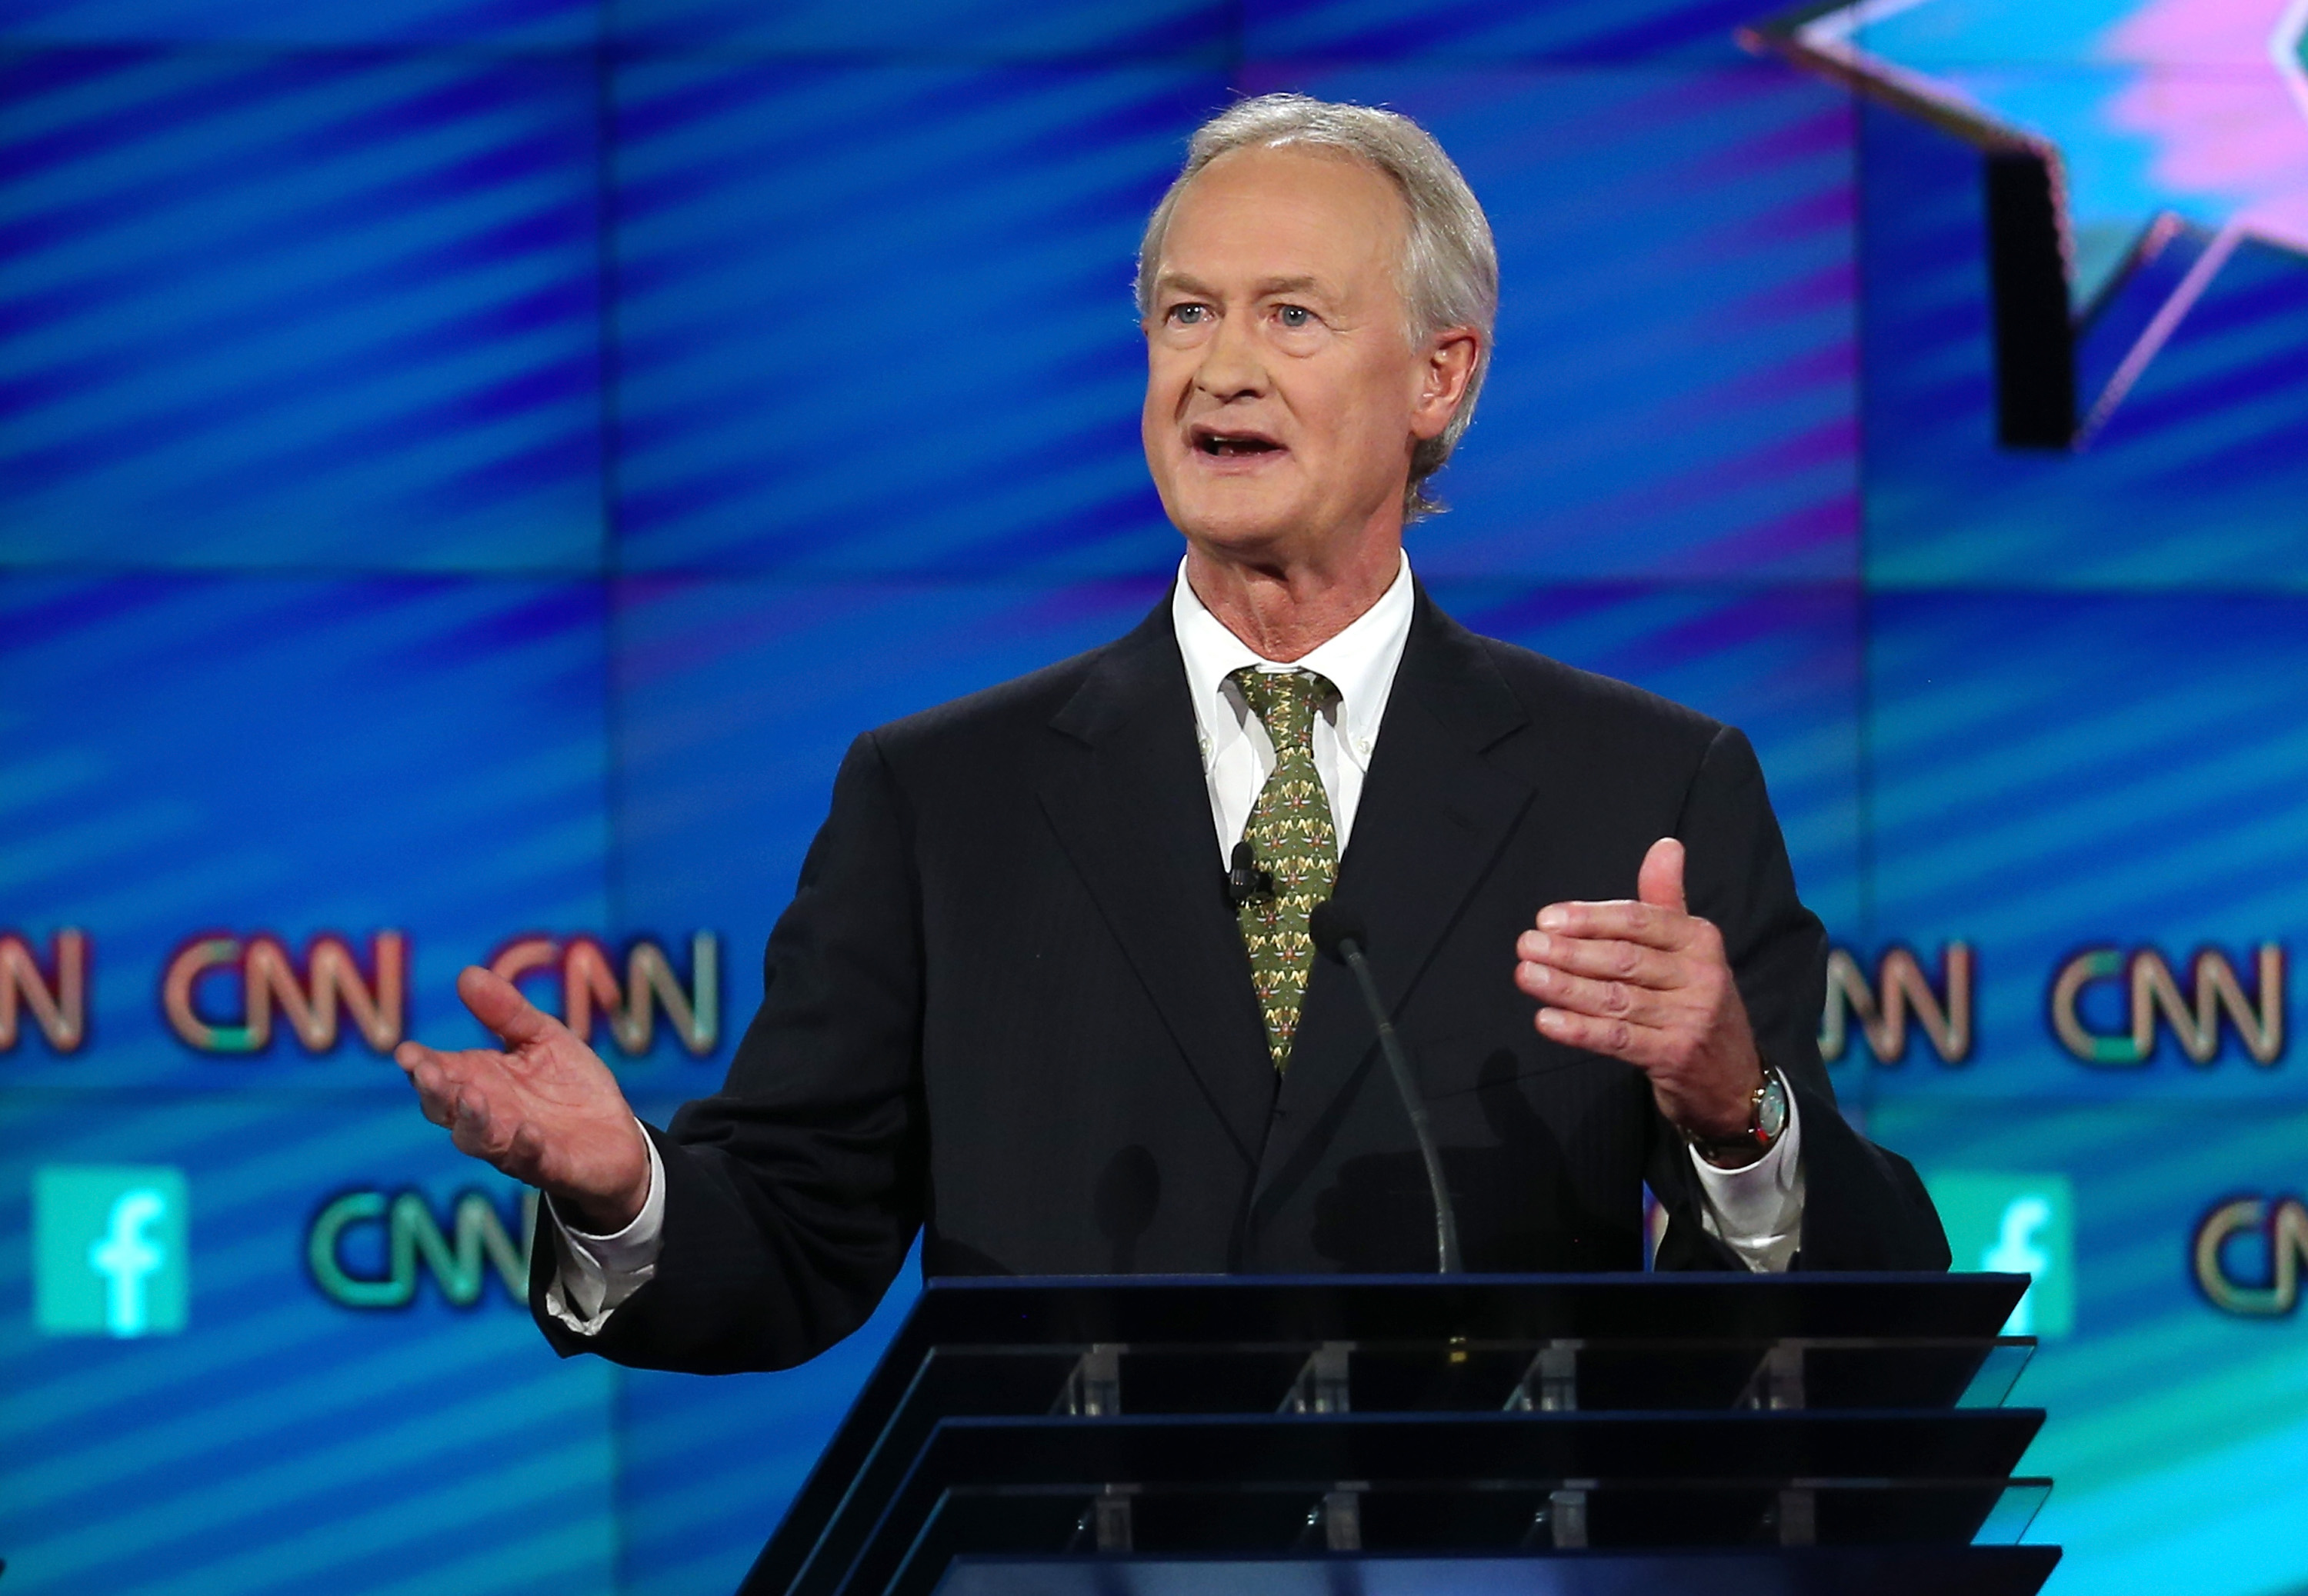 Former presidential candidate Lincoln Chafee at the Democratic debate in Las Vegas earlier this month.